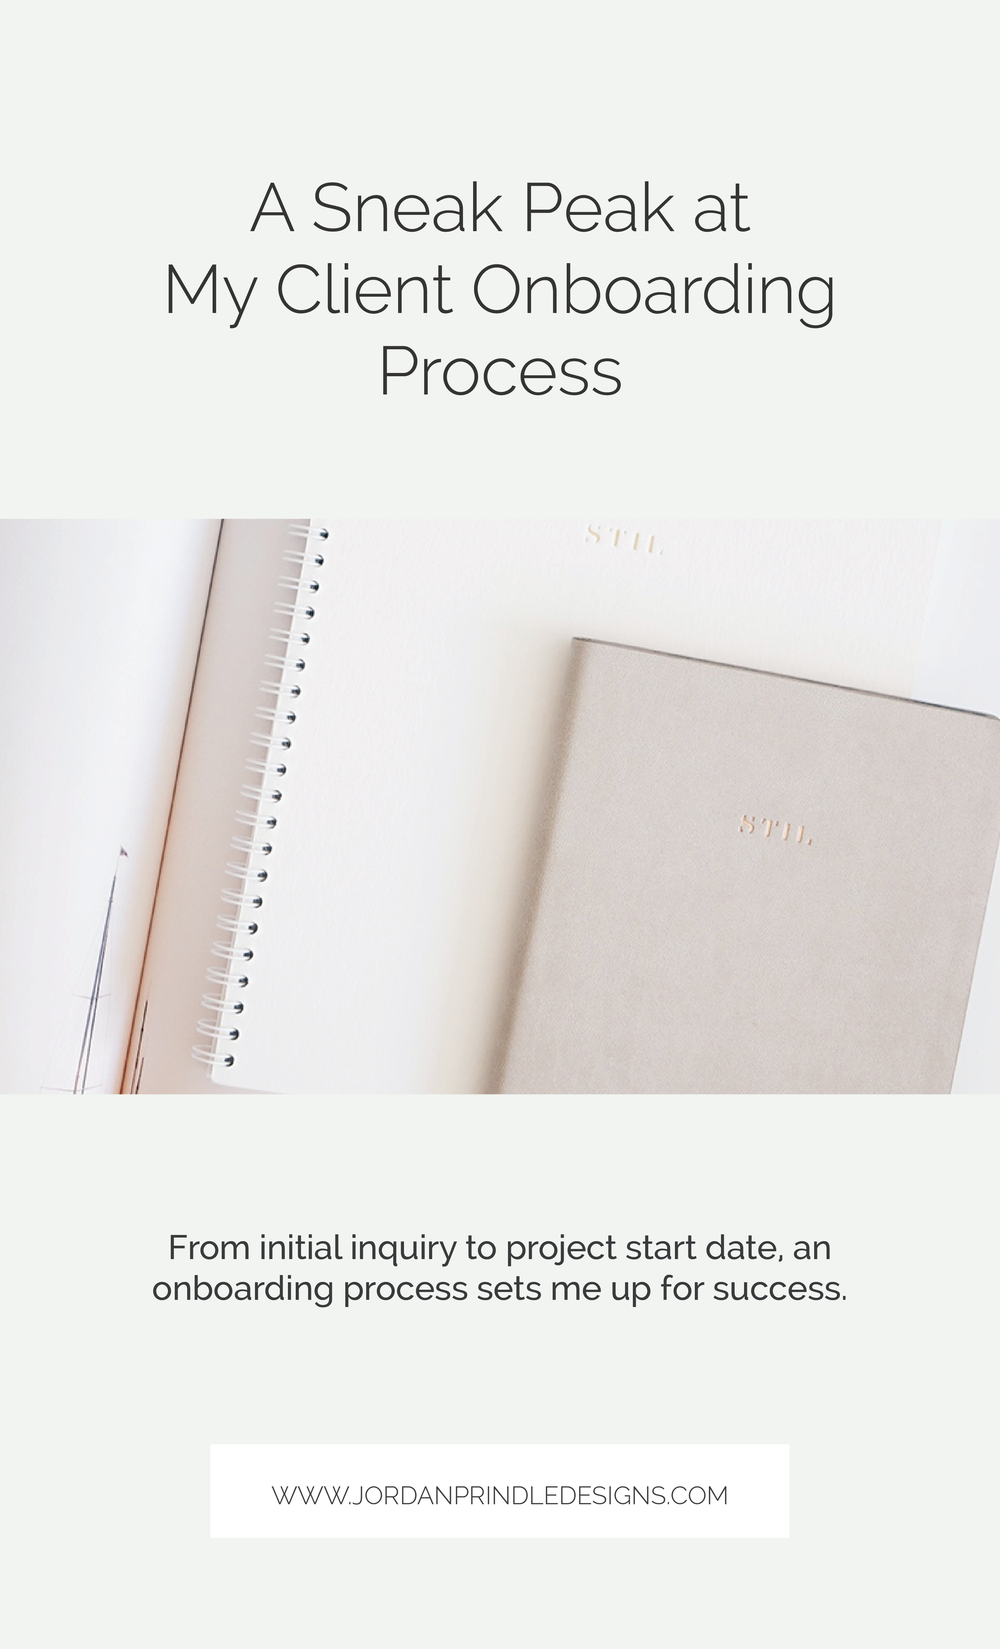 A Sneak Peak at My Client Onboarding Process | At the beginning of each new brand and web design client, I have a specific process that ensures each project is a success. Read the full process at www.jordanprindledesigns.com #branddesign #webdesign #clientprocess